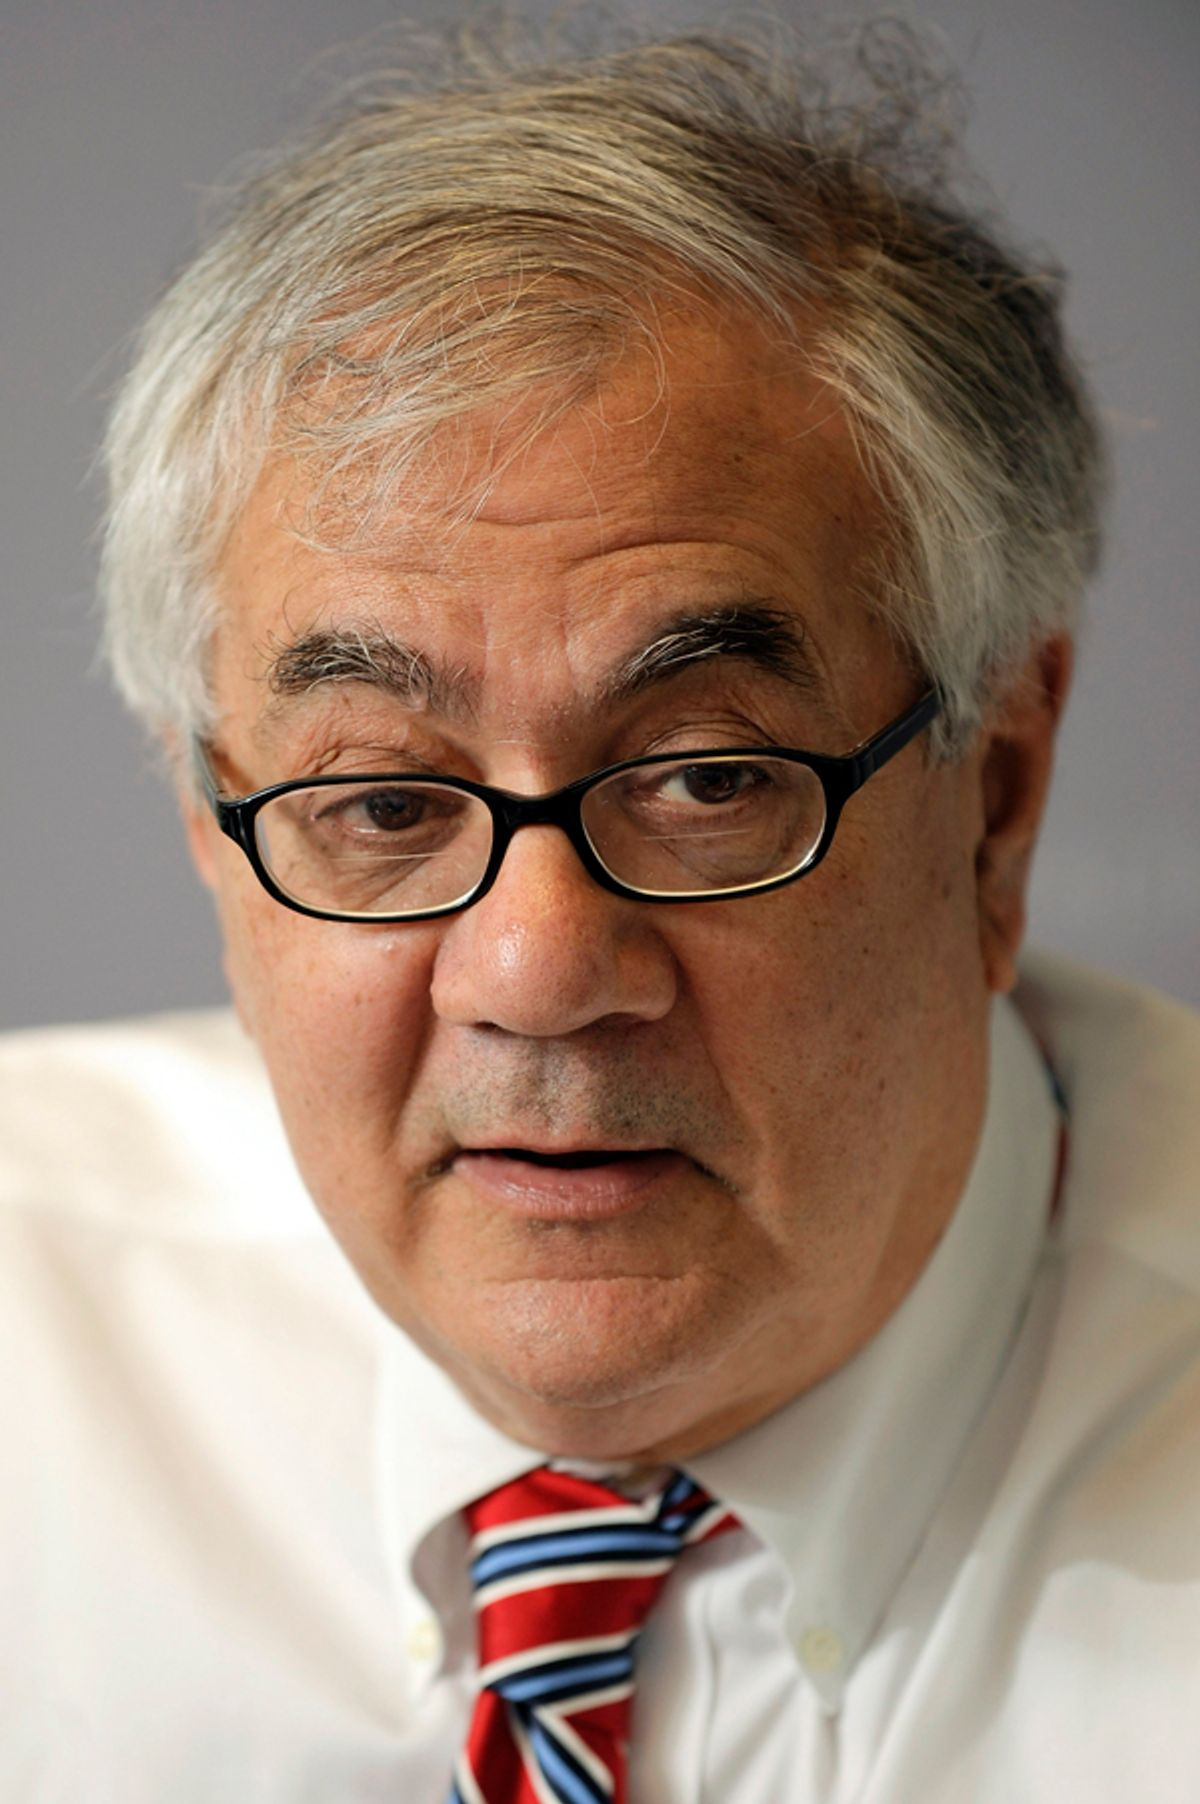 U.S. Representative Barney Frank (D-MA), Chairman of the House Financial Services Committee, participates in the Reuters Global Financial Regulation Summit in Washington, April 28, 2009.  REUTERS/Jonathan Ernst (UNITED STATES POLITICS BUSINESS HEADSHOT) (© Jonathan Ernst / Reuters)